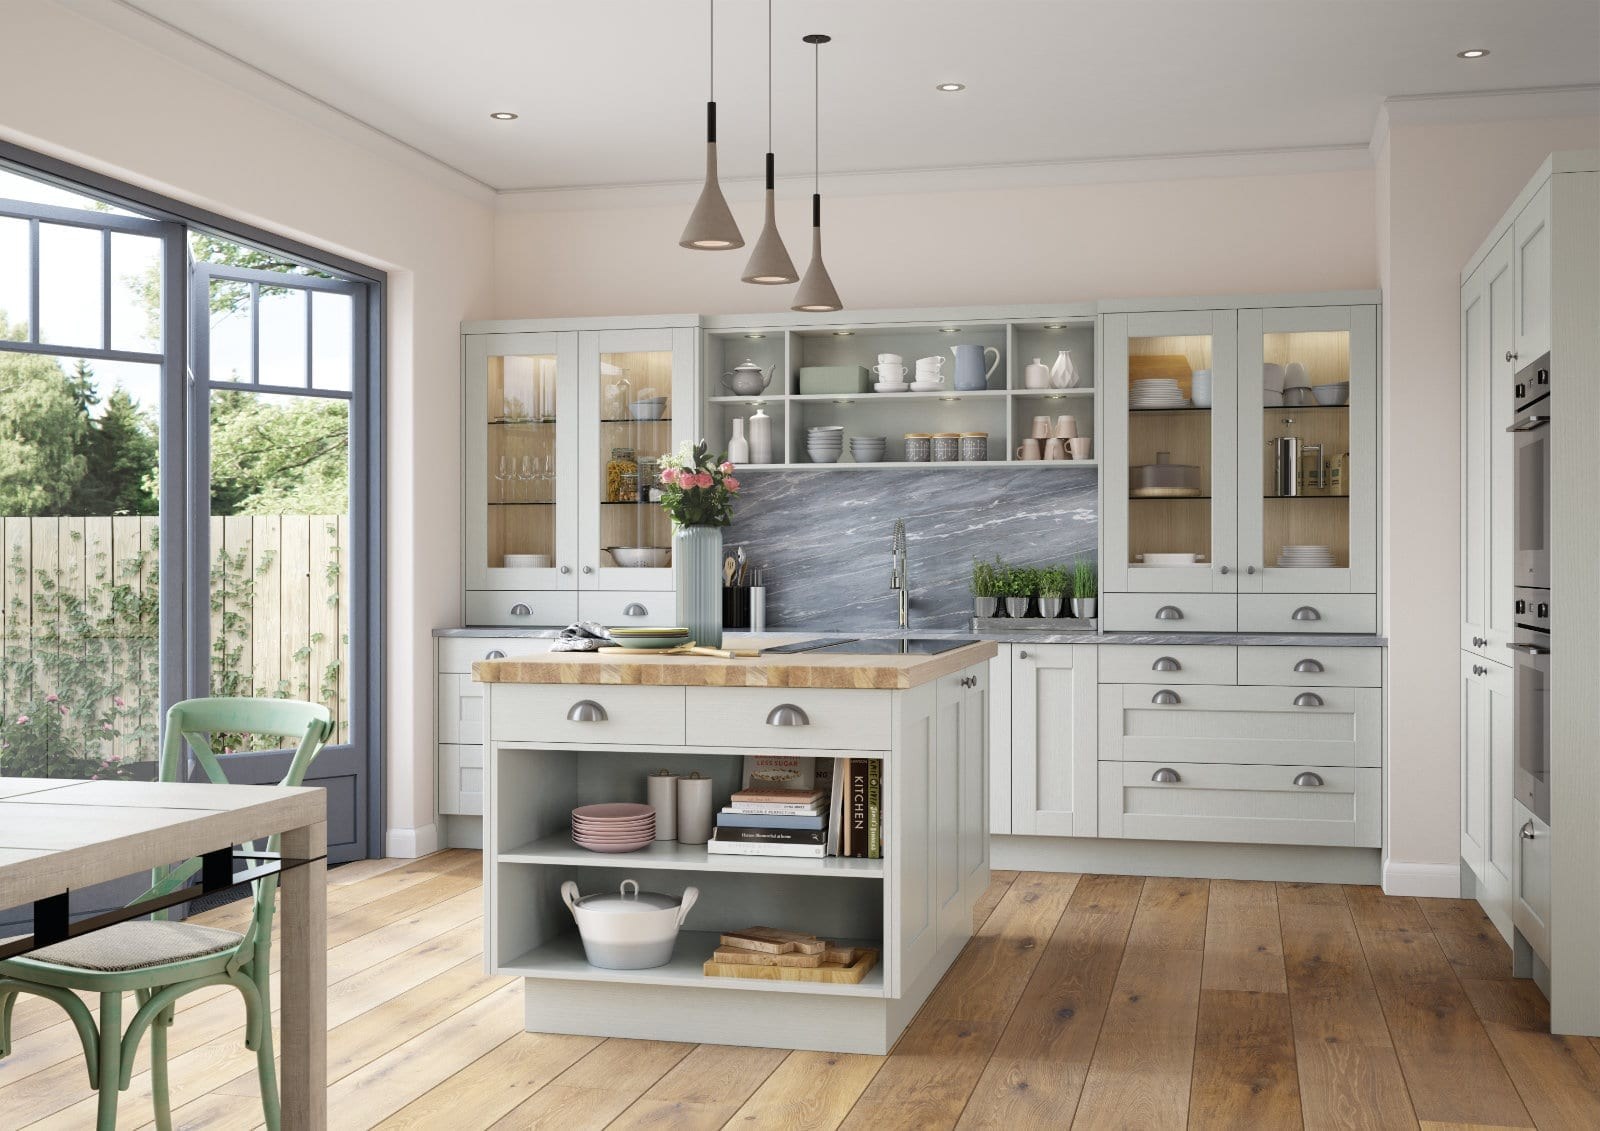 Alku Light Shaker L Shaped Kitchen With Island 2 | Unique Bedrooms Direct | Dunstable